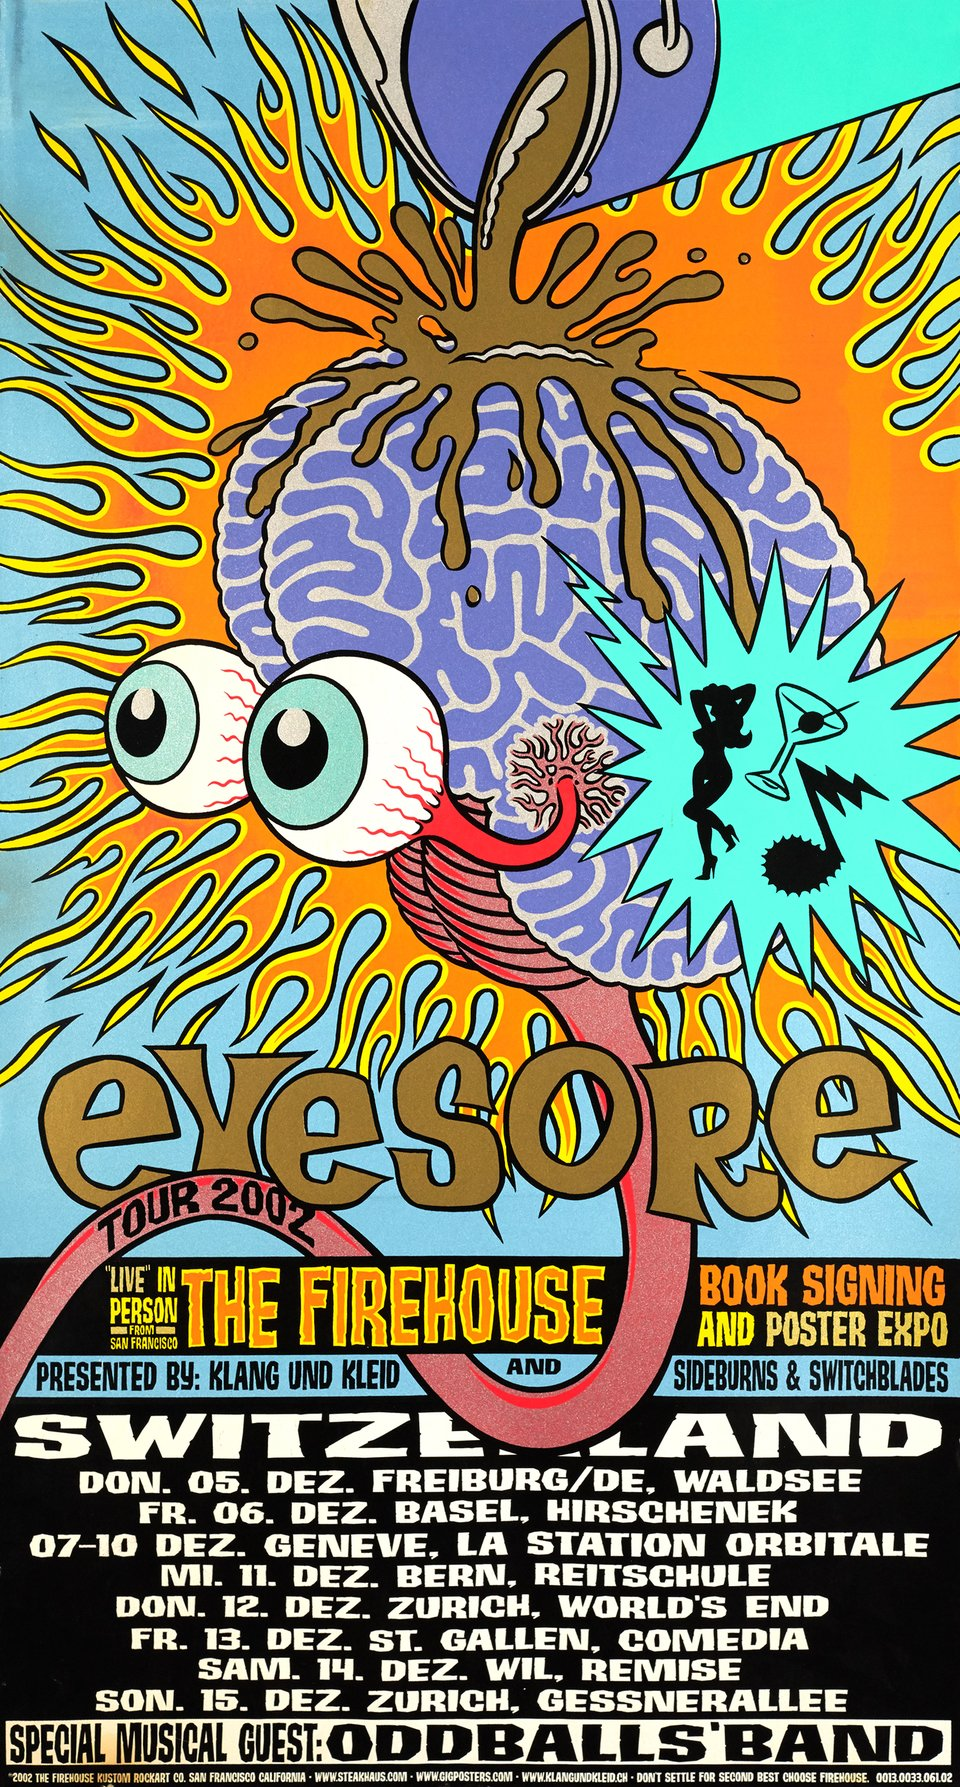 The Firehouse, Eyesore Tour 2002, Live in Person from San Francisco – Vintage poster – ANONYMOUS – 2002